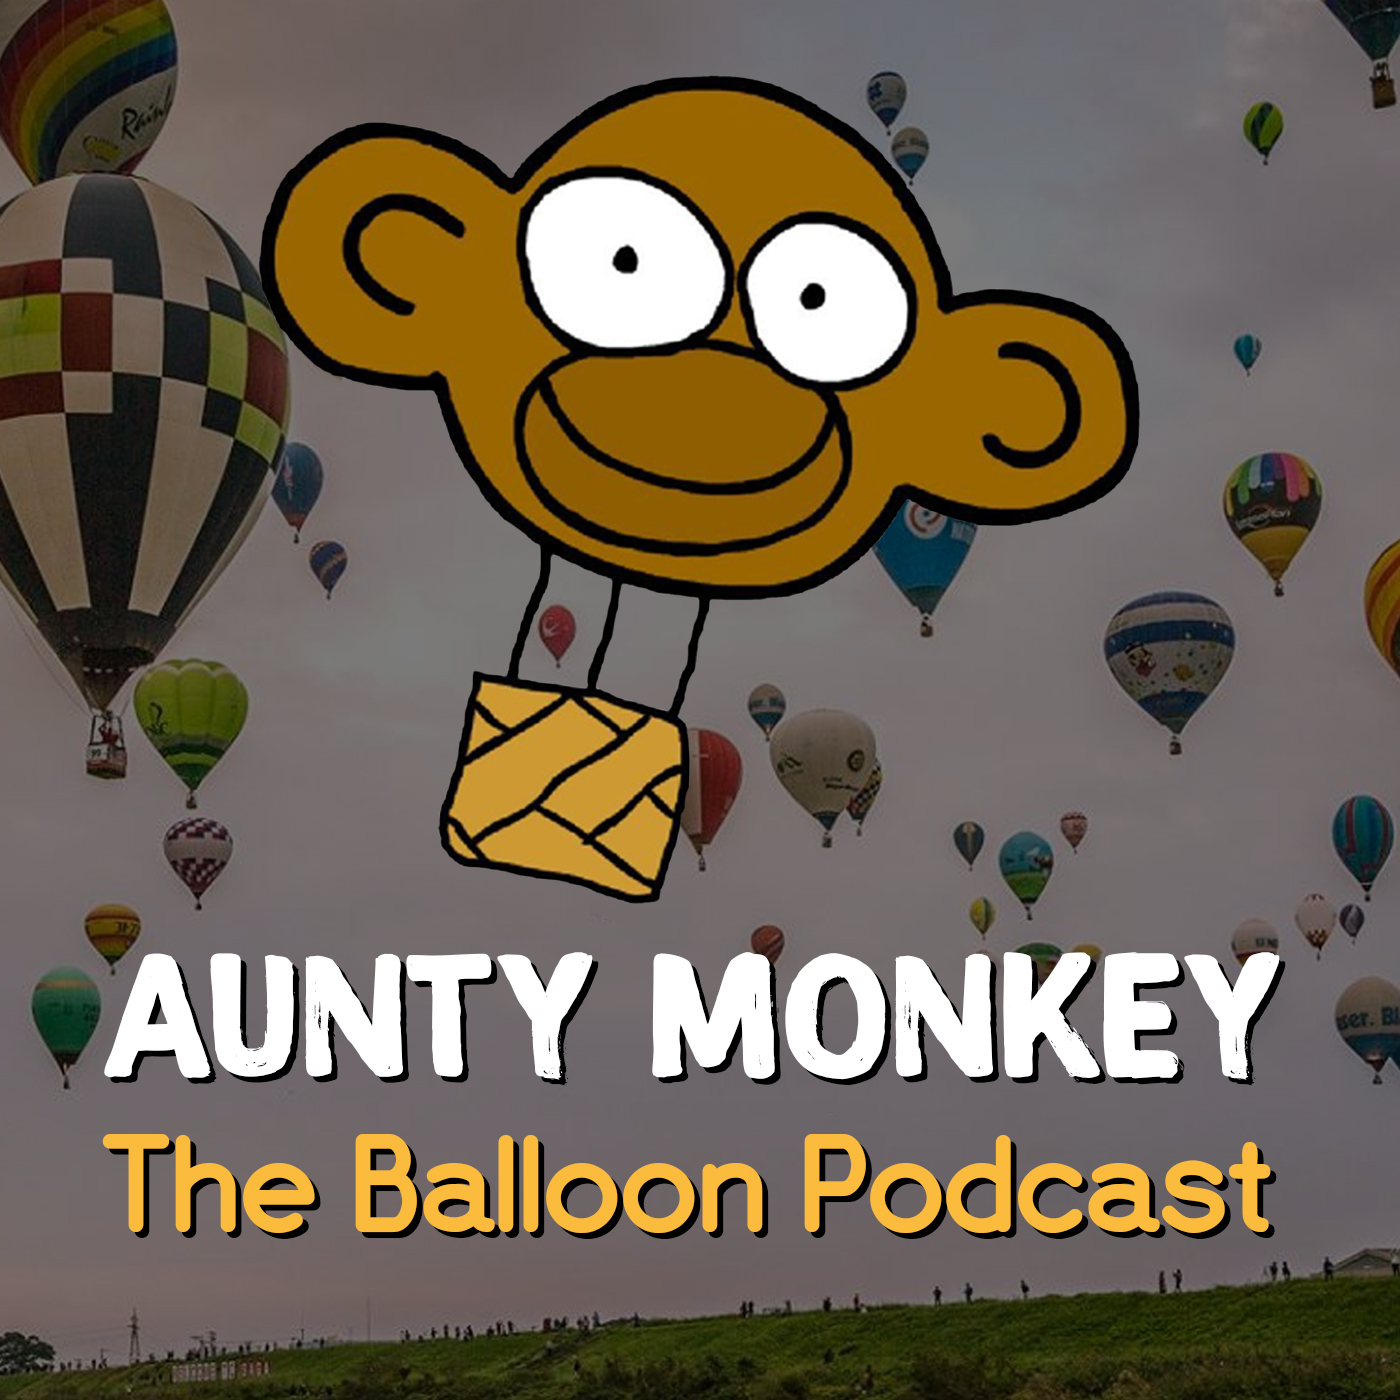 Aunty Monkey - The Balloon Podcast